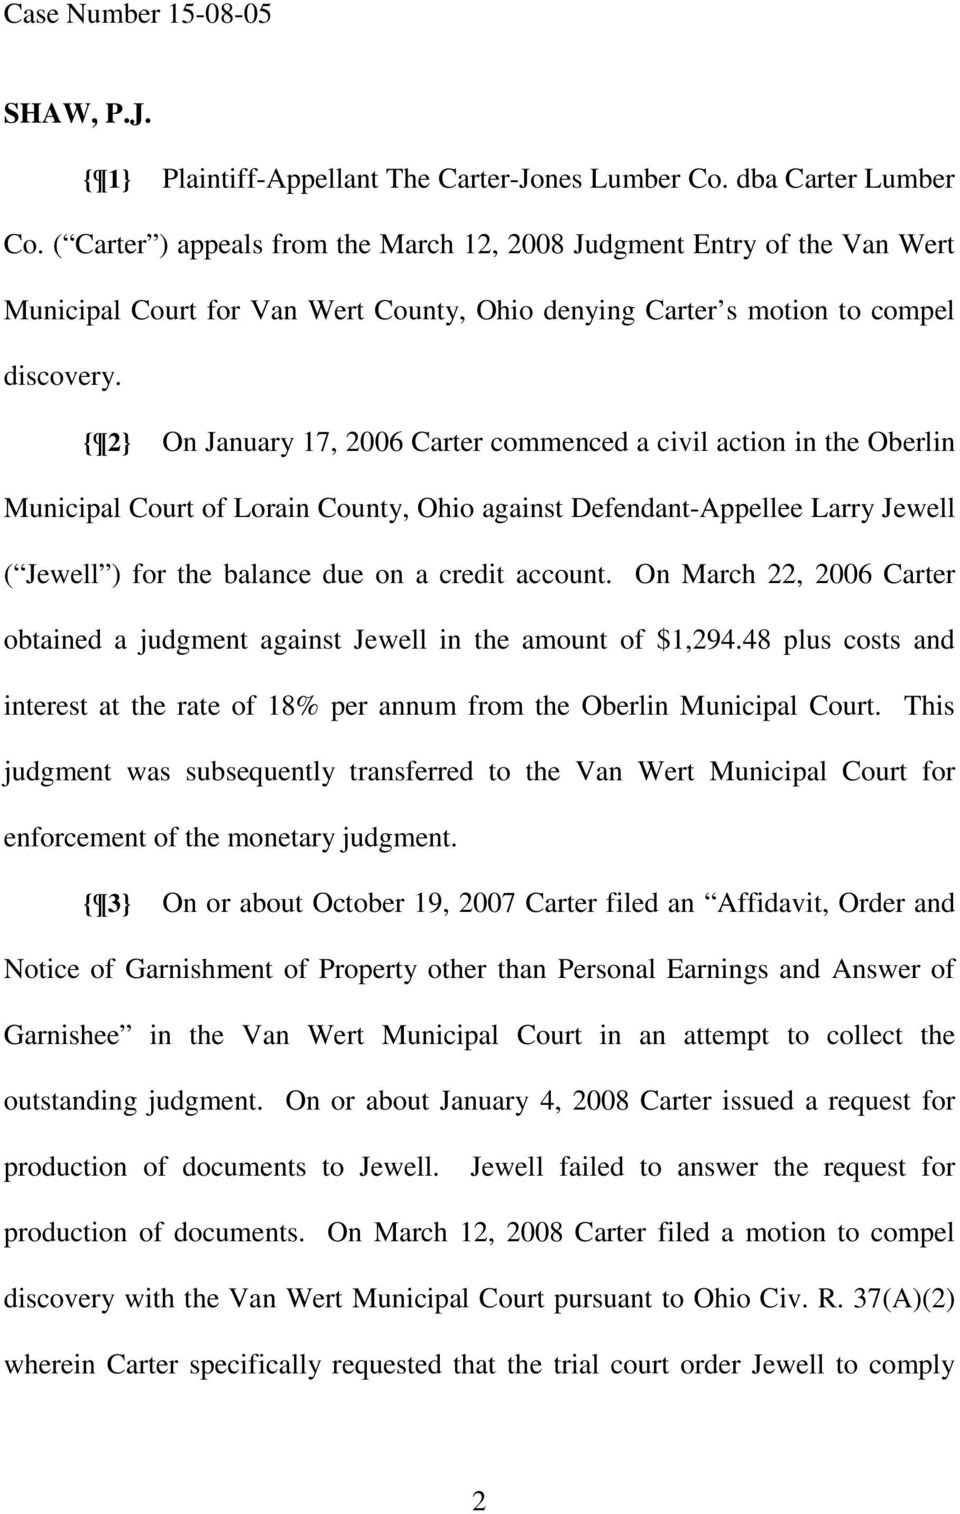 { 2} On January 17, 2006 Carter commenced a civil action in the Oberlin Municipal Court of Lorain County, Ohio against Defendant-Appellee Larry Jewell ( Jewell ) for the balance due on a credit